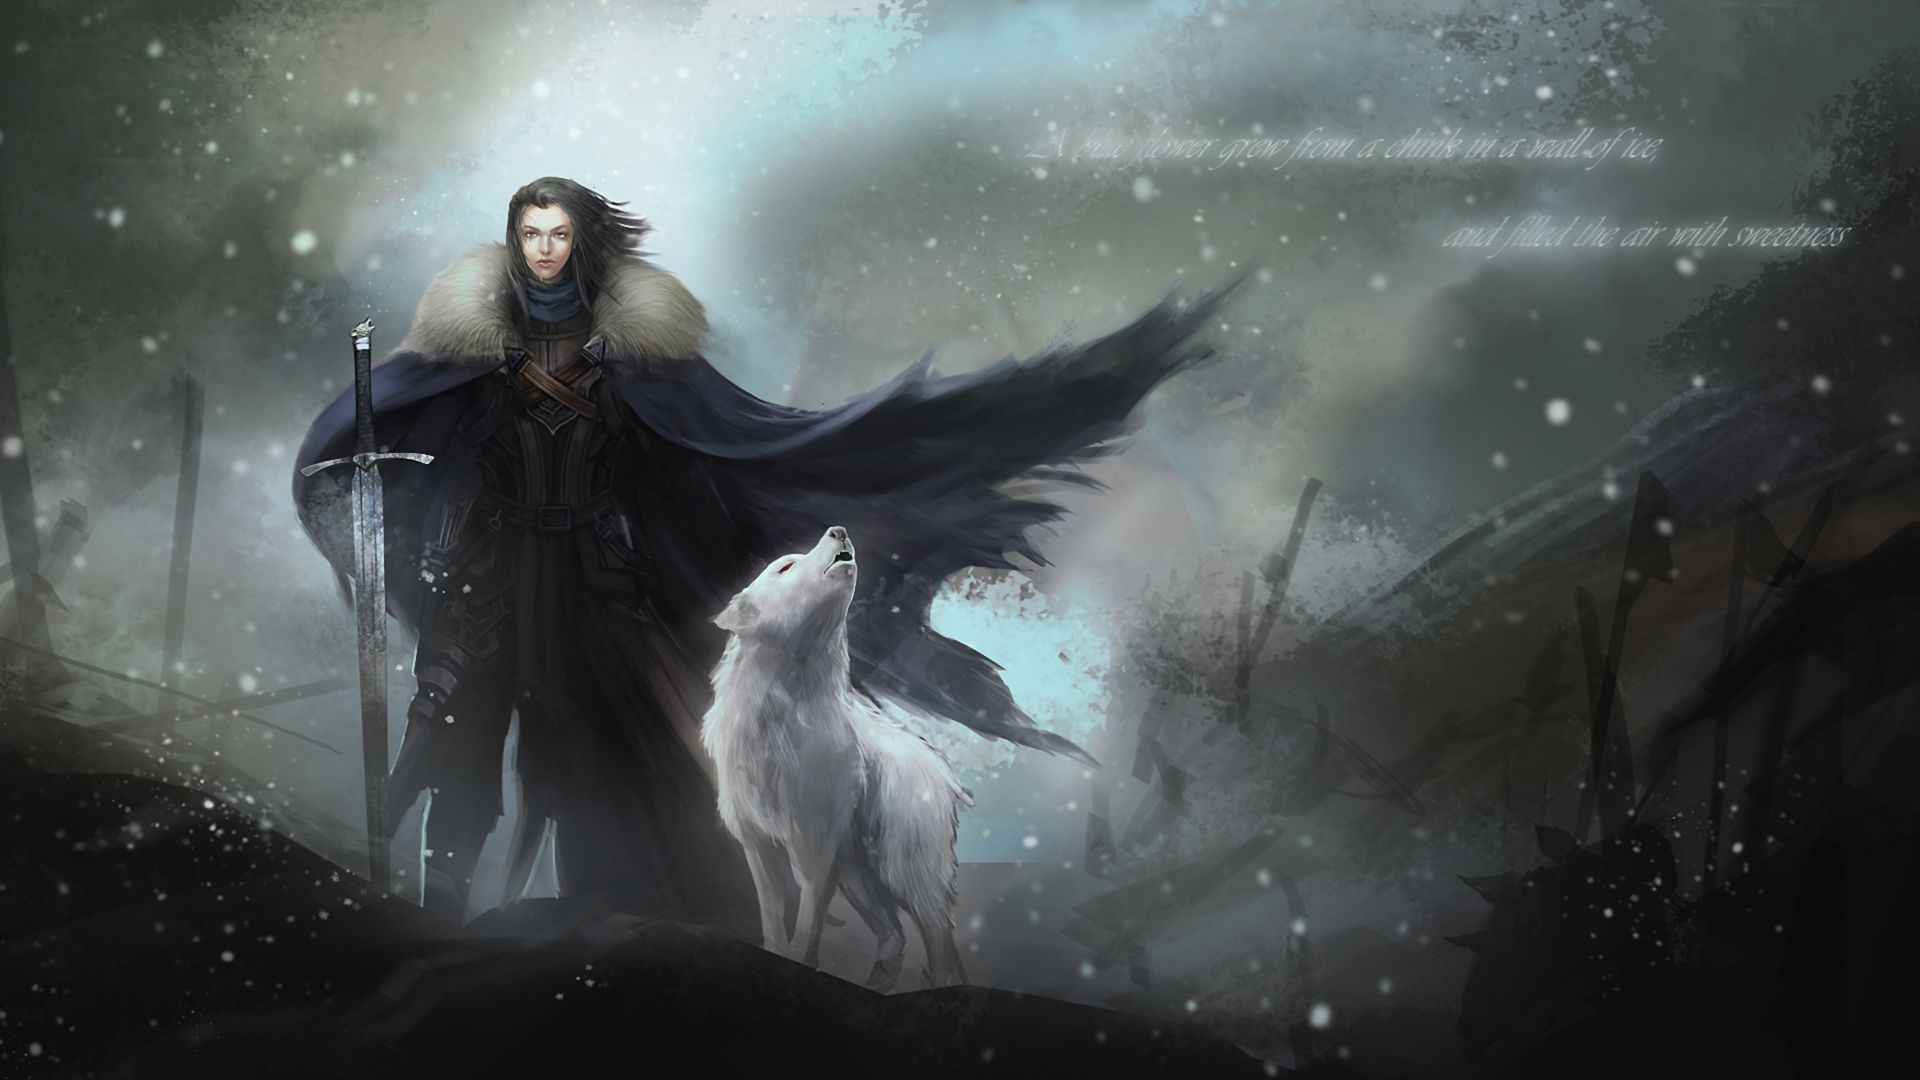 Tv Show Game Of Thrones Wallpaper Game Of Thrones Art Hd Wallpaper Art Wallpaper